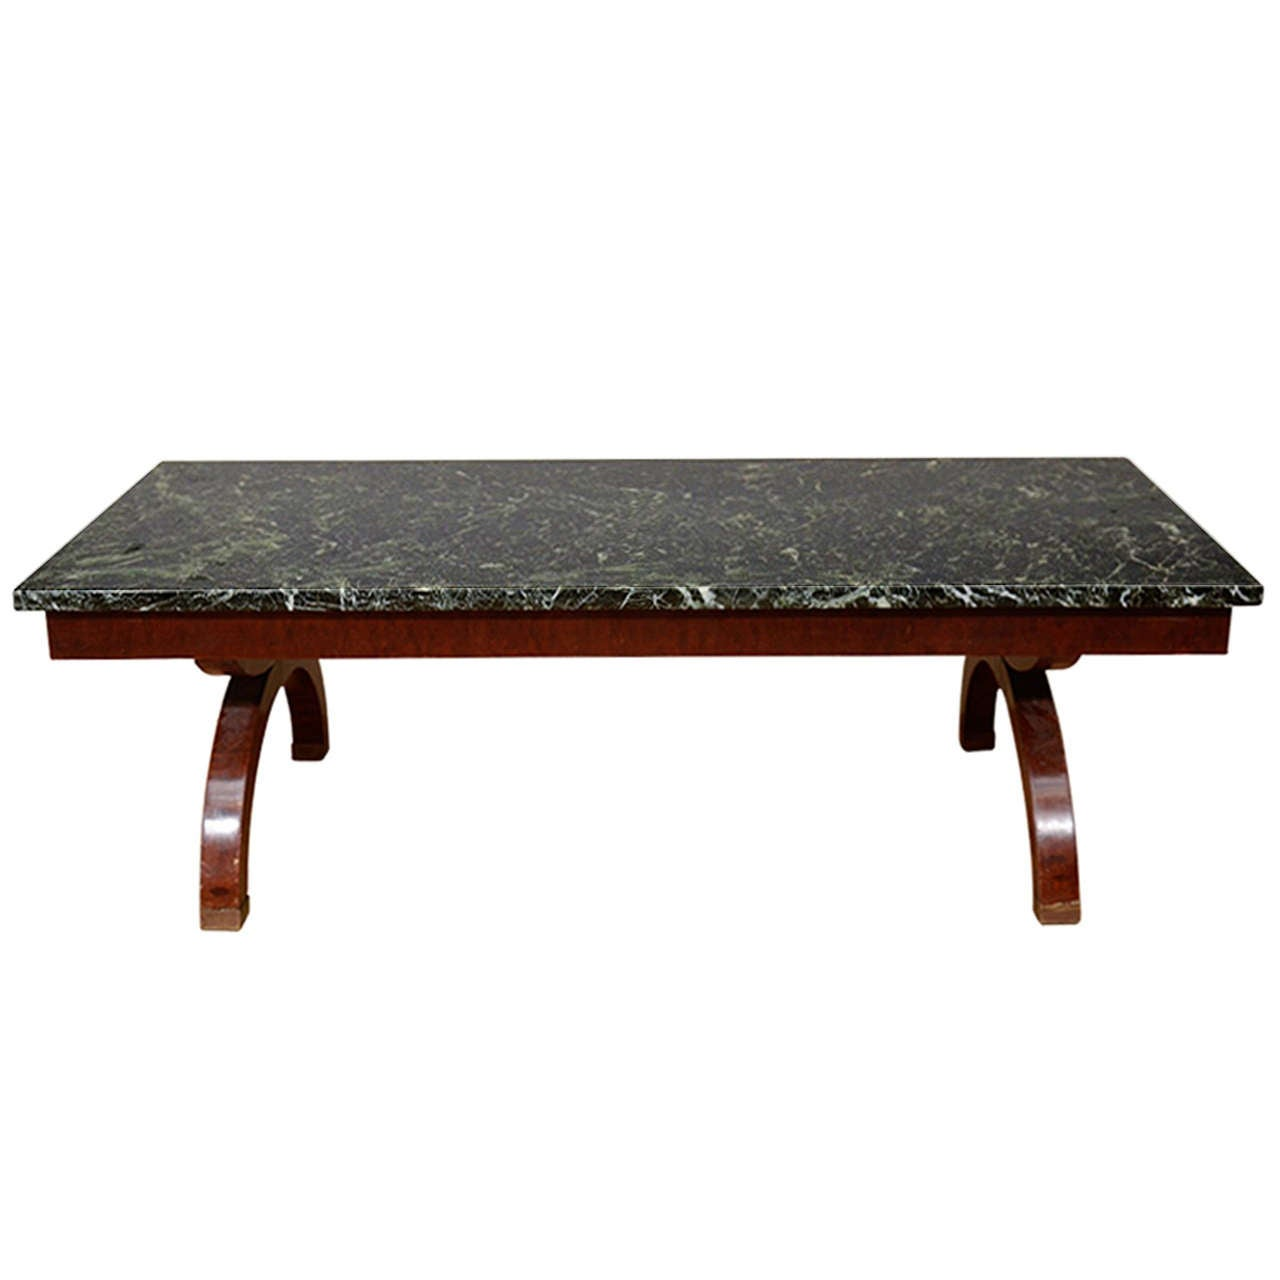 Art deco coffee table with green marble surface at 1stdibs art deco coffee table with green marble surface 1 geotapseo Images